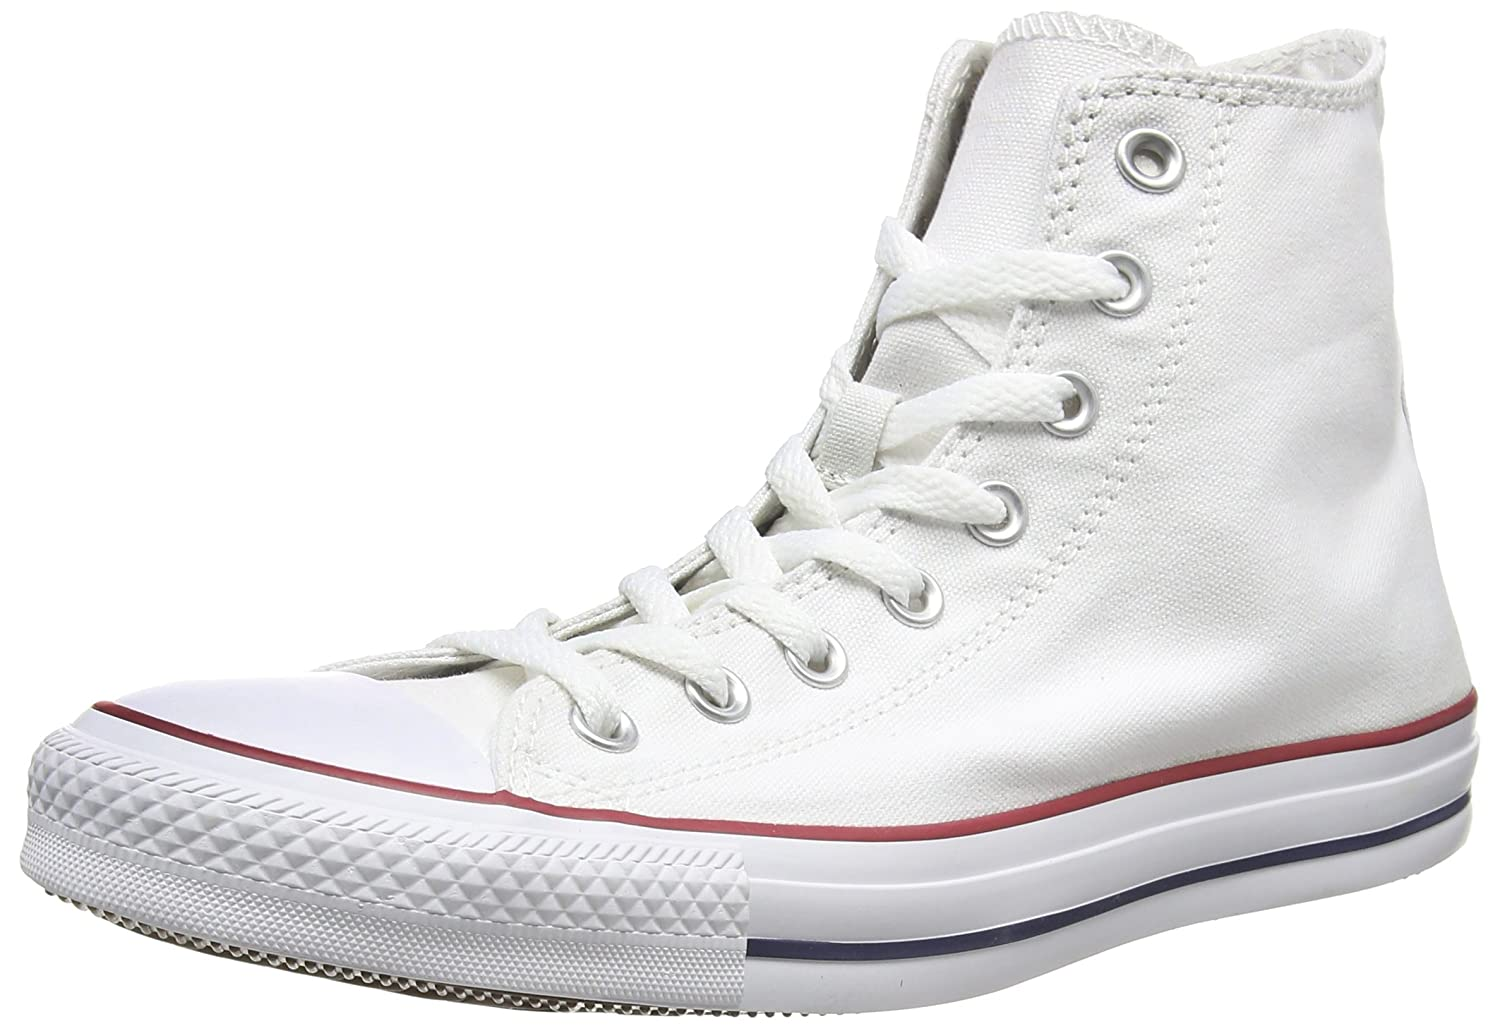 Converse Chuck Taylor All Star Core Hi B01M7WKO9E 6 B(M) US Women / 4 D(M) US Men|Optical White